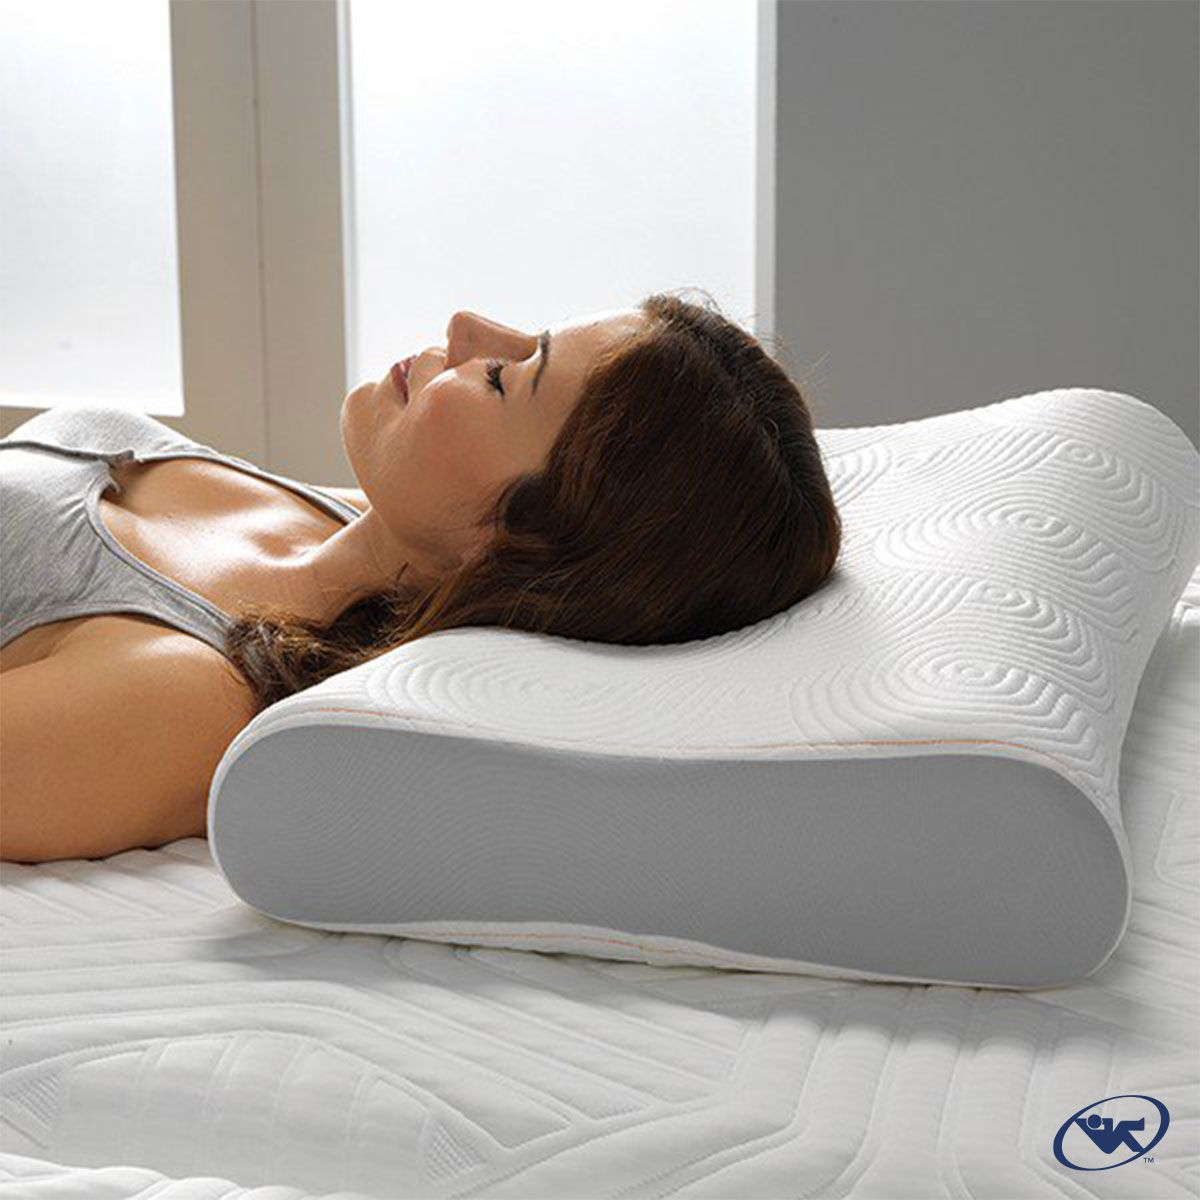 off ALL Tempur Pedic pillows and